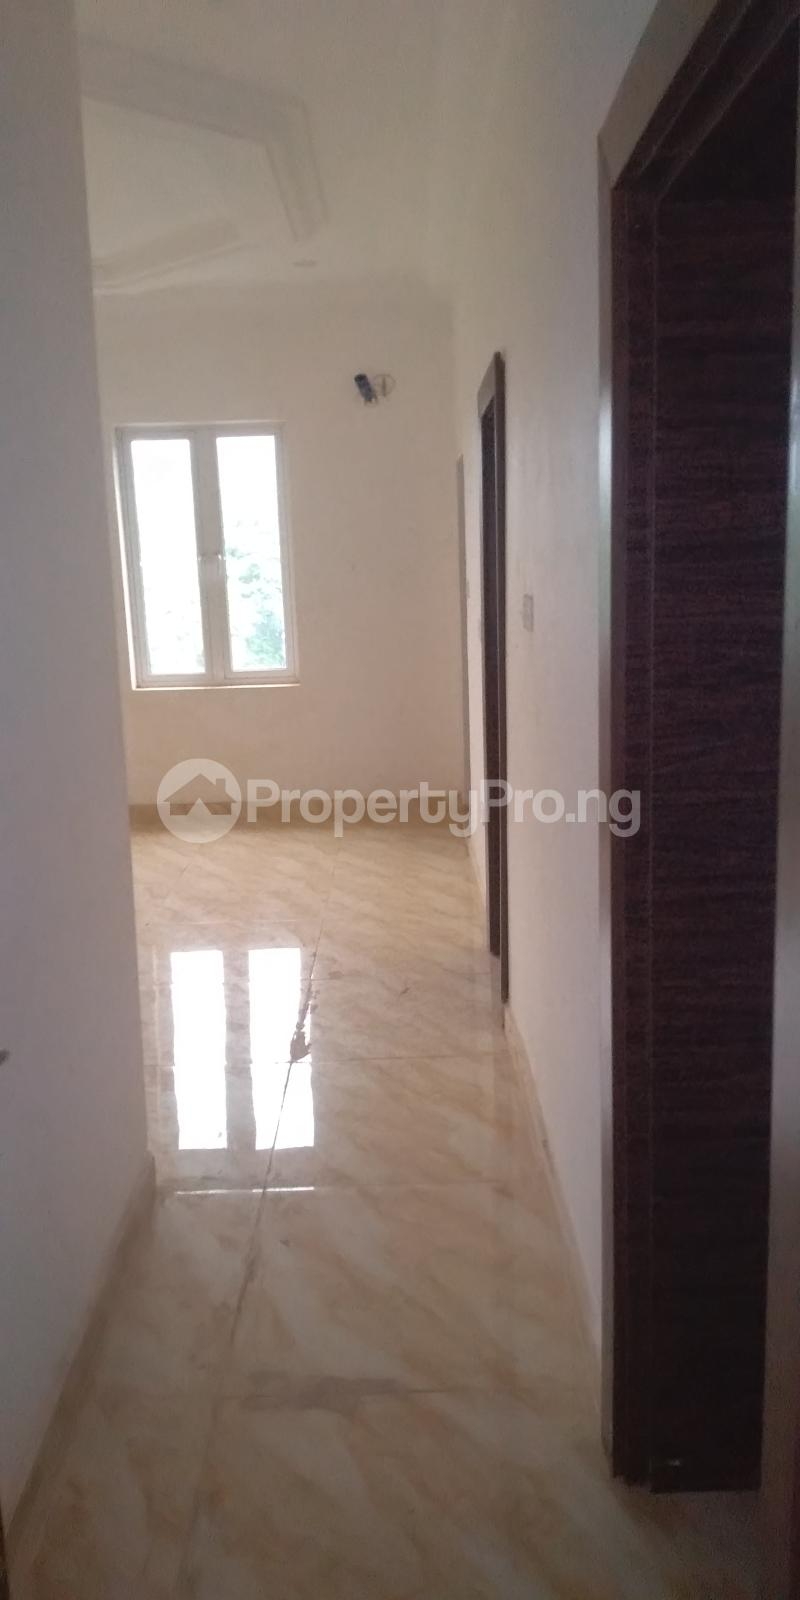 5 bedroom Flat / Apartment for sale Life Camp Abuja - 9